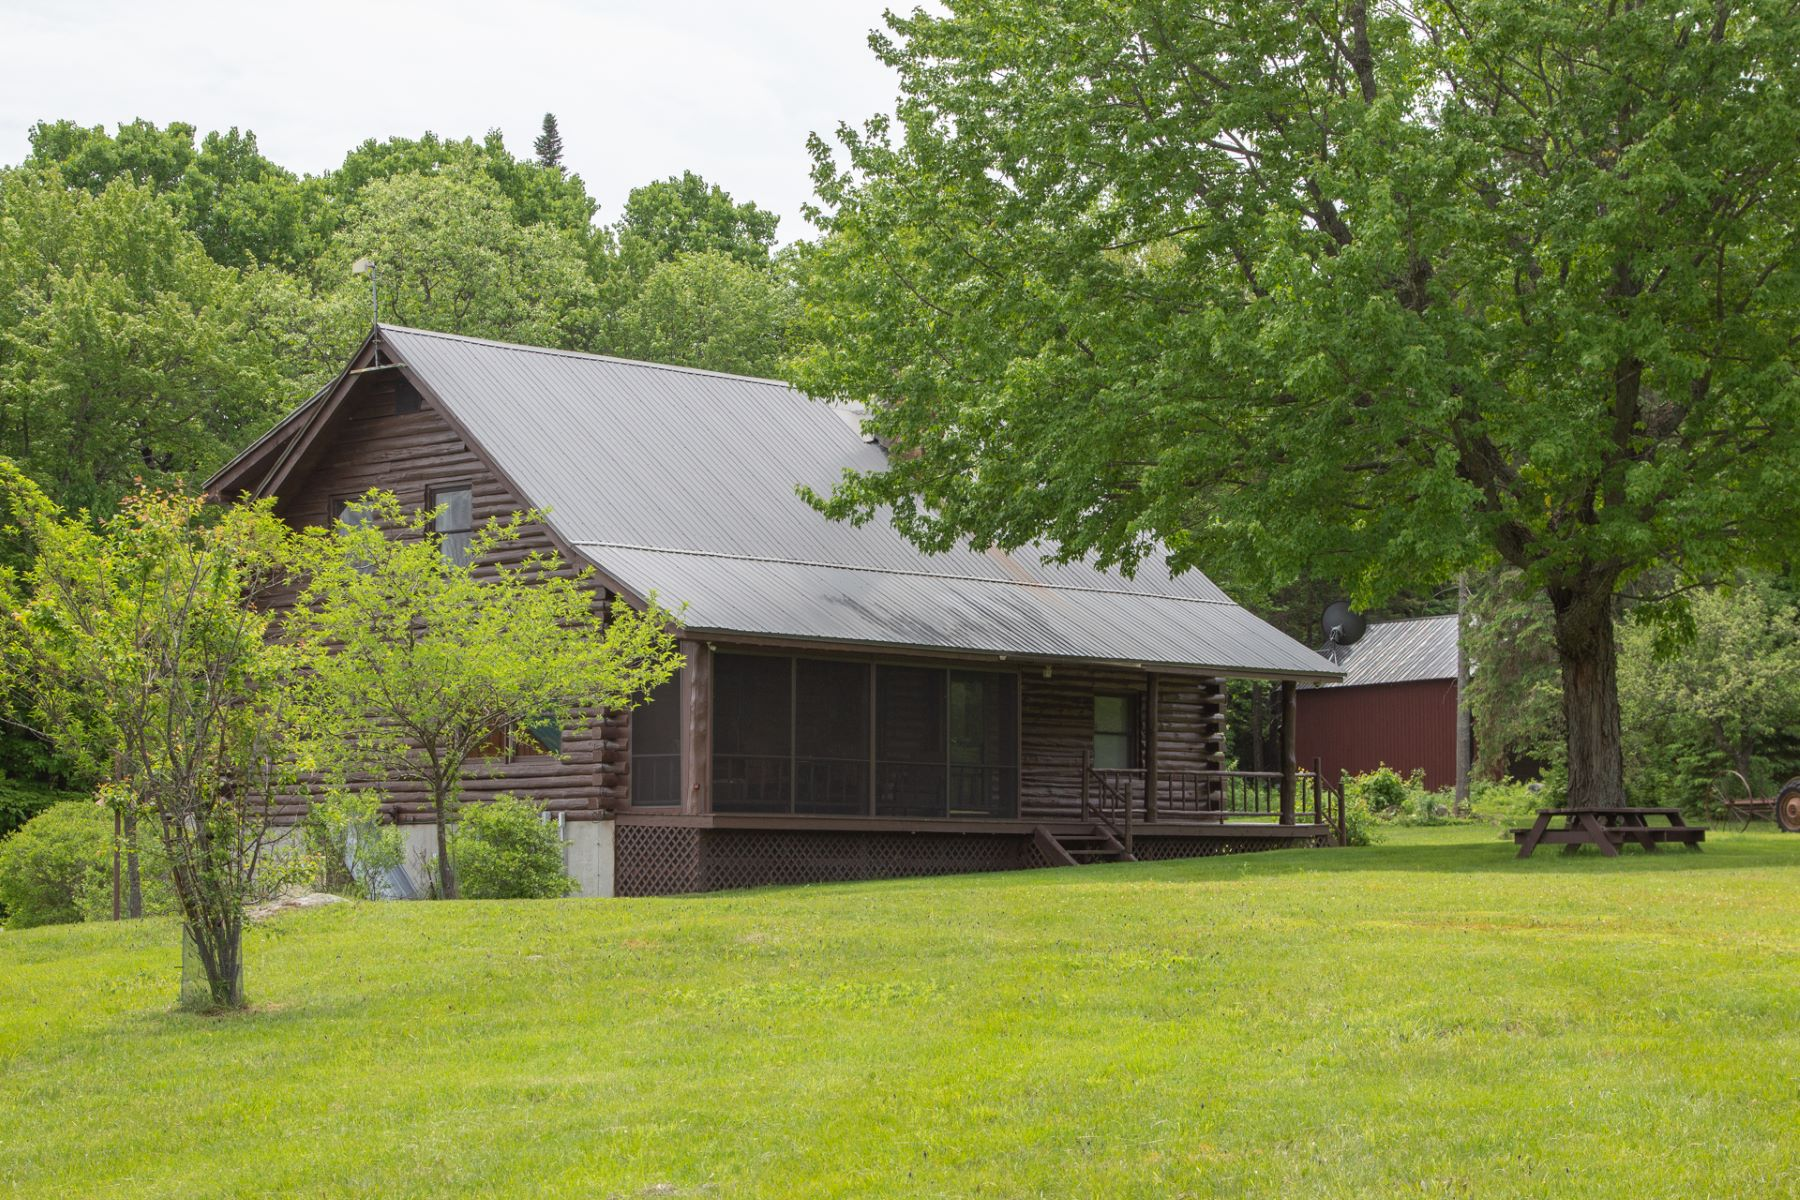 Single Family Homes for Sale at 2418 Victory Road, Victory 2418 Victory Rd Victory, Vermont 05858 United States